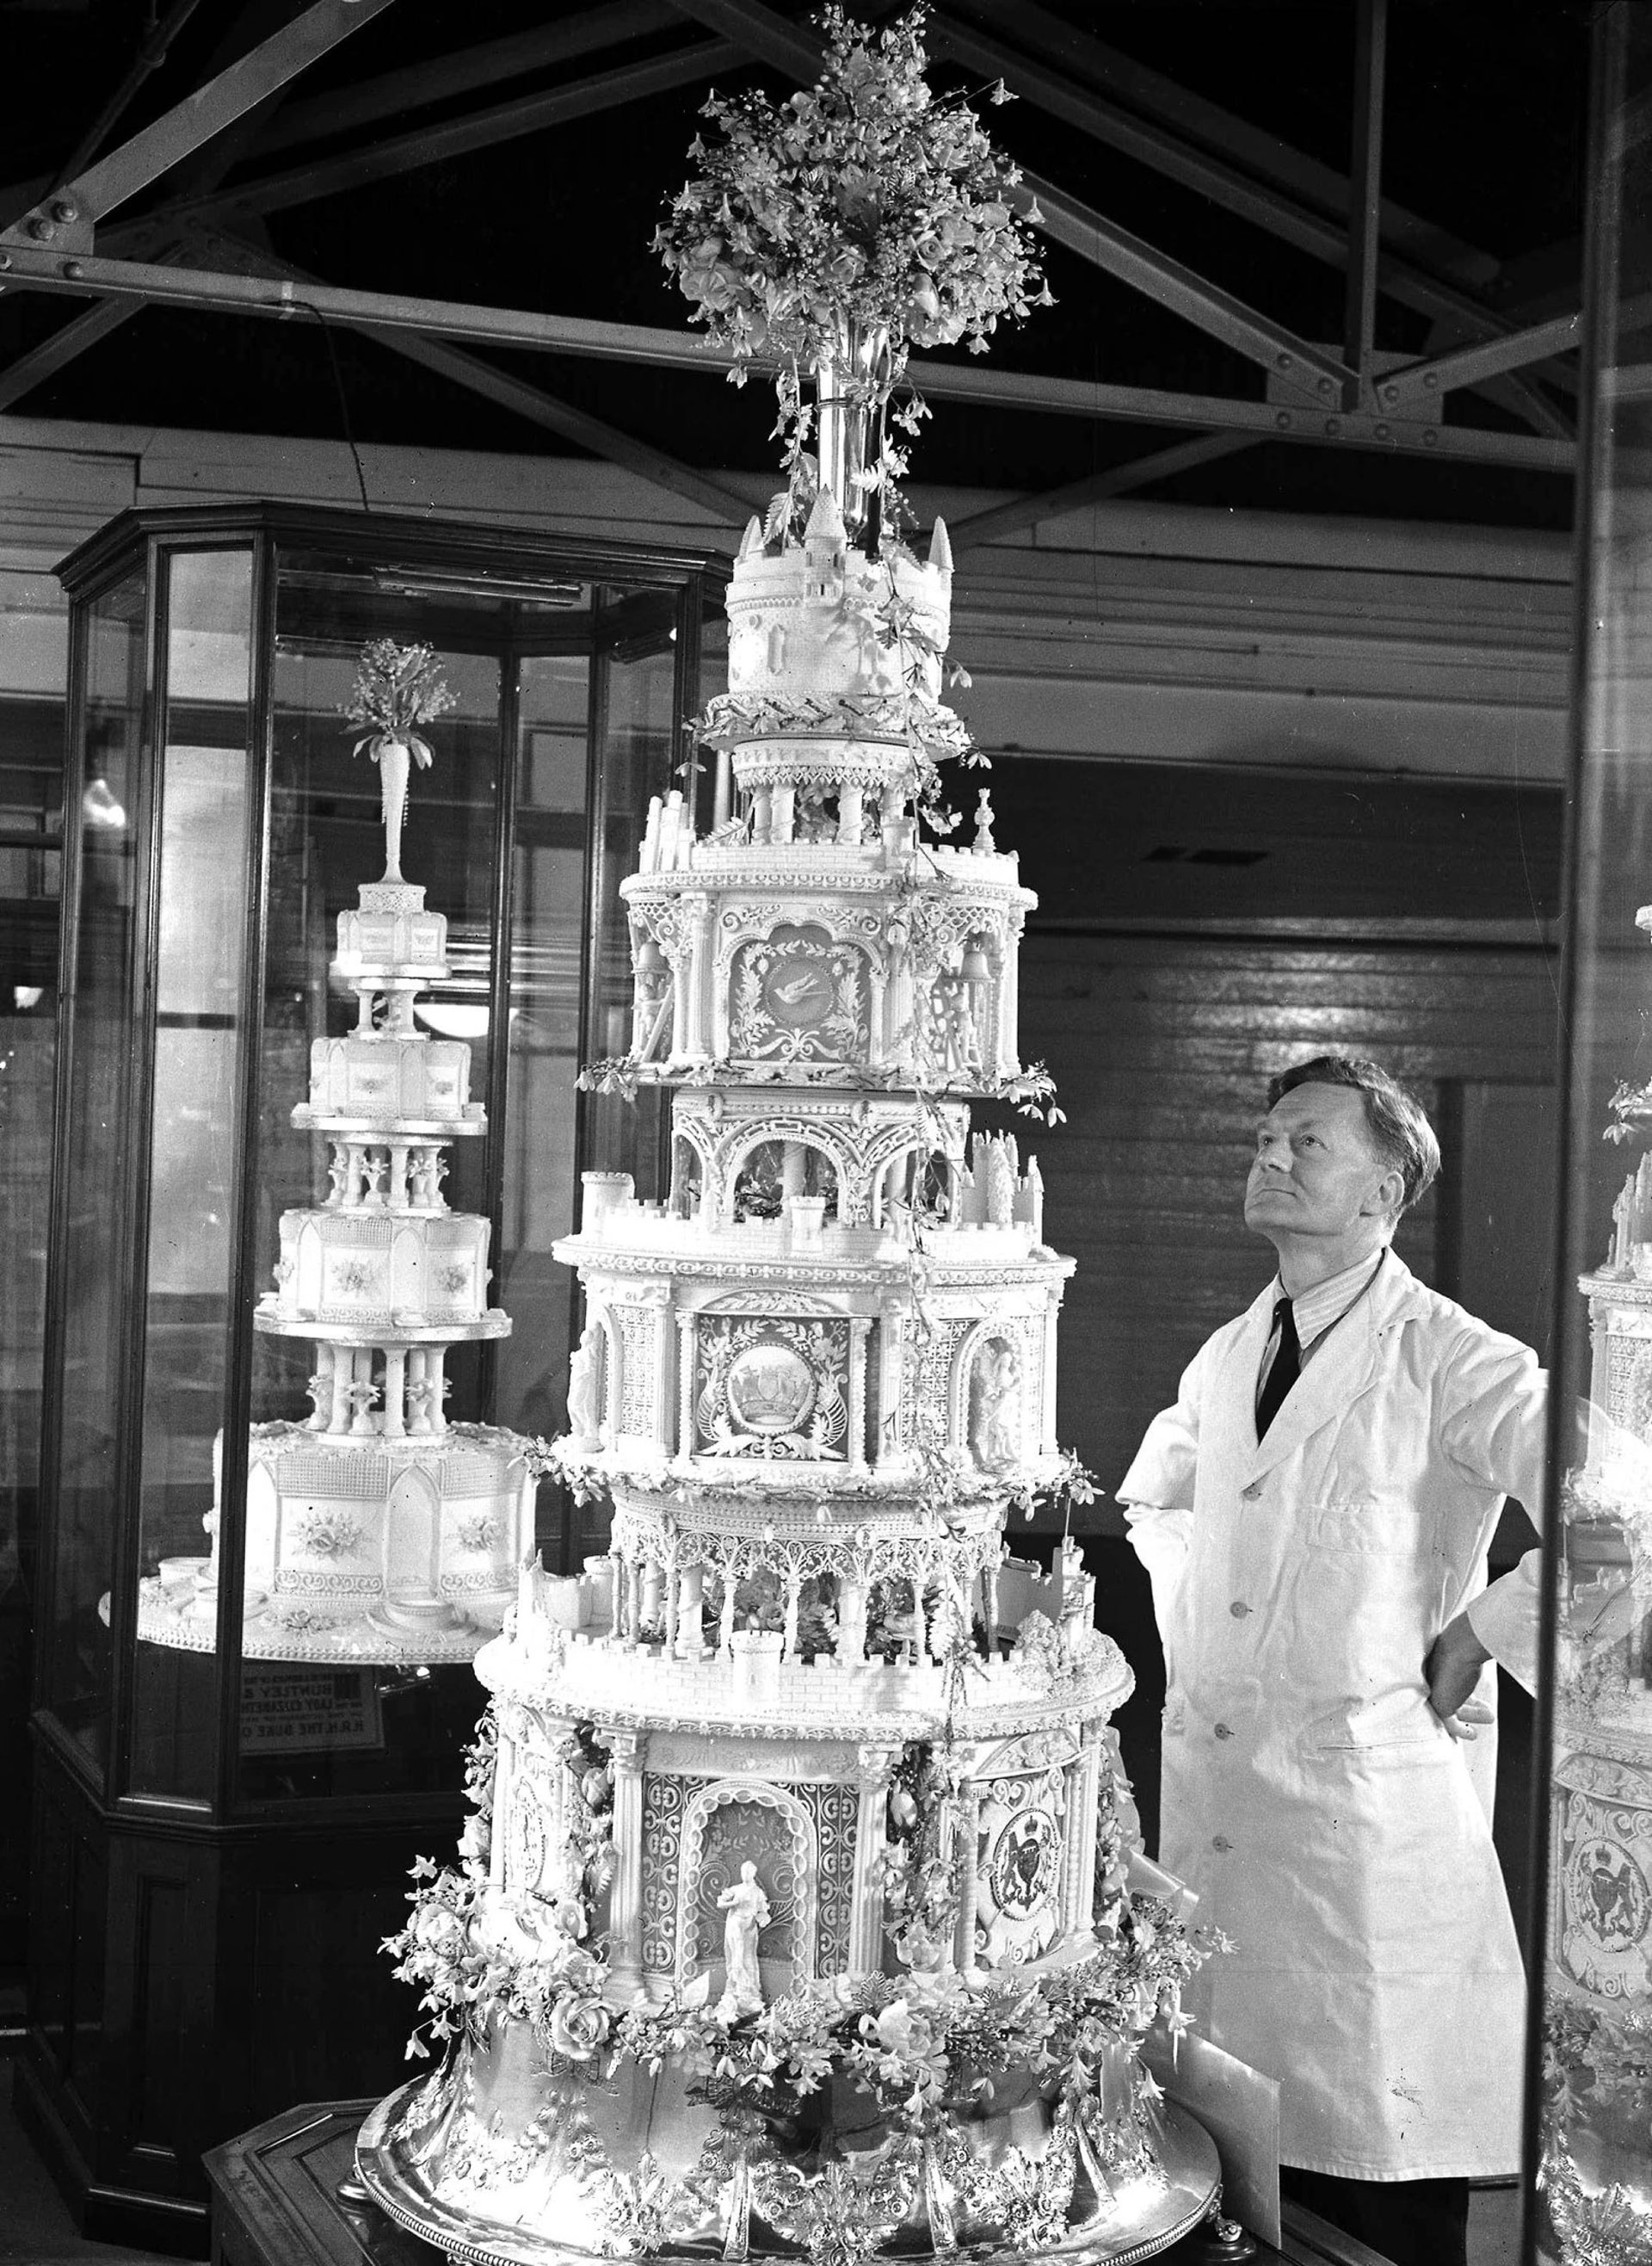 A cake architect working on Princess Elizabeth's wedding cake pictured looking at a replica of the Queen's (later known as the Queen Mother's) cake in Berkshire, 1947.